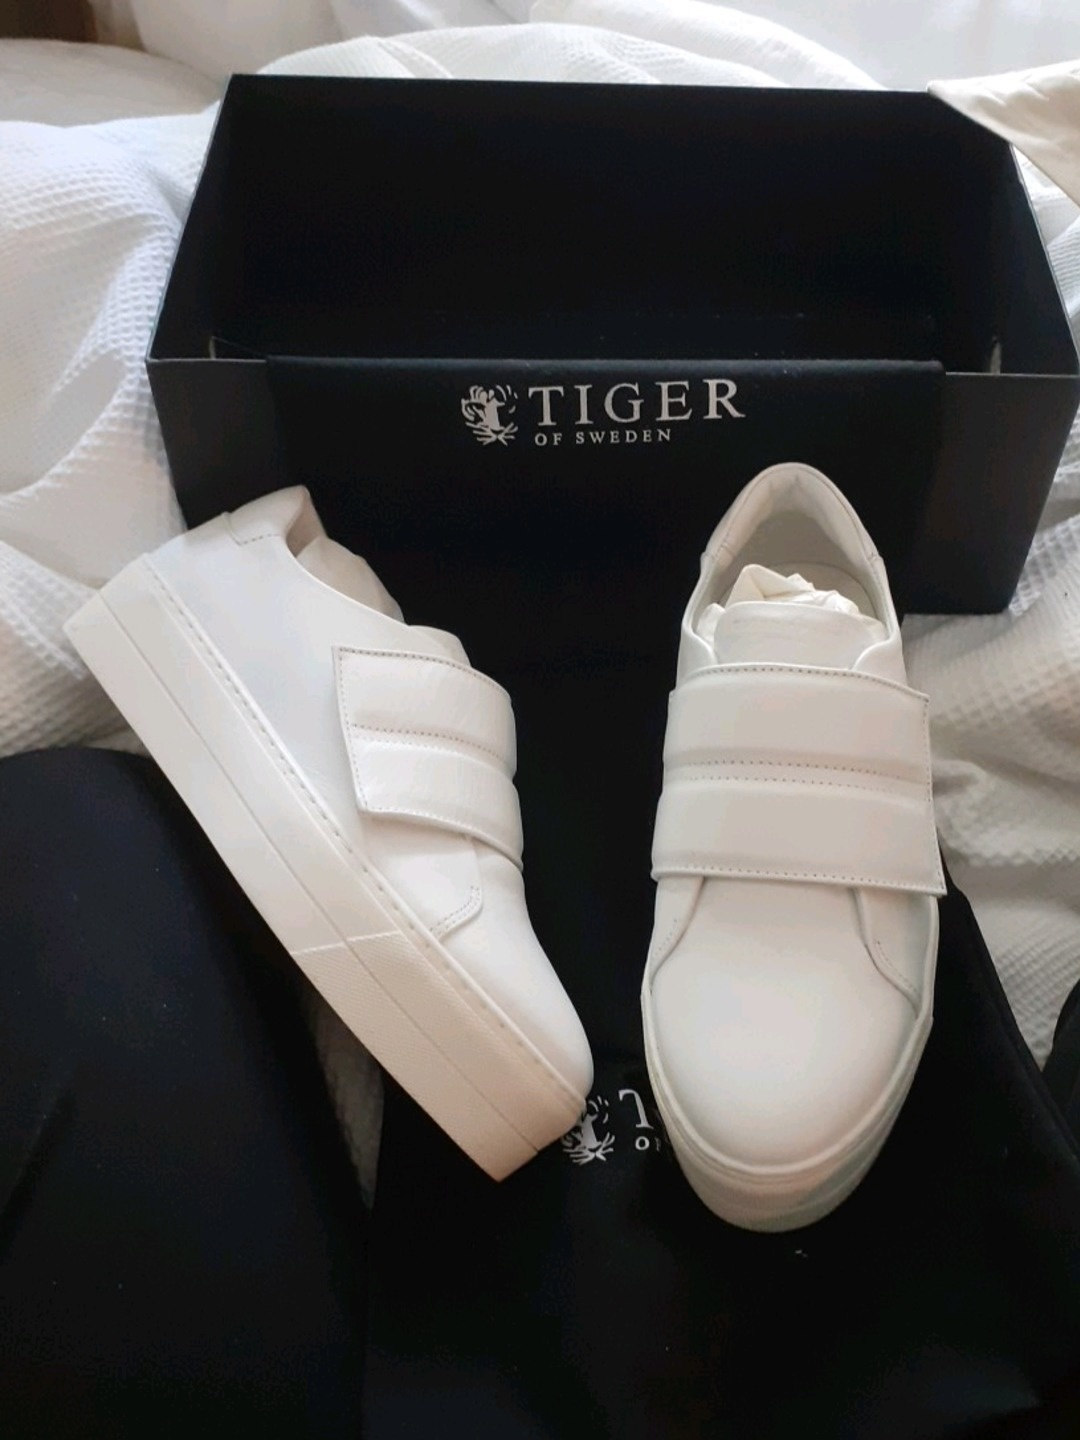 Women's boots - TIGER OF SWEDEN photo 1